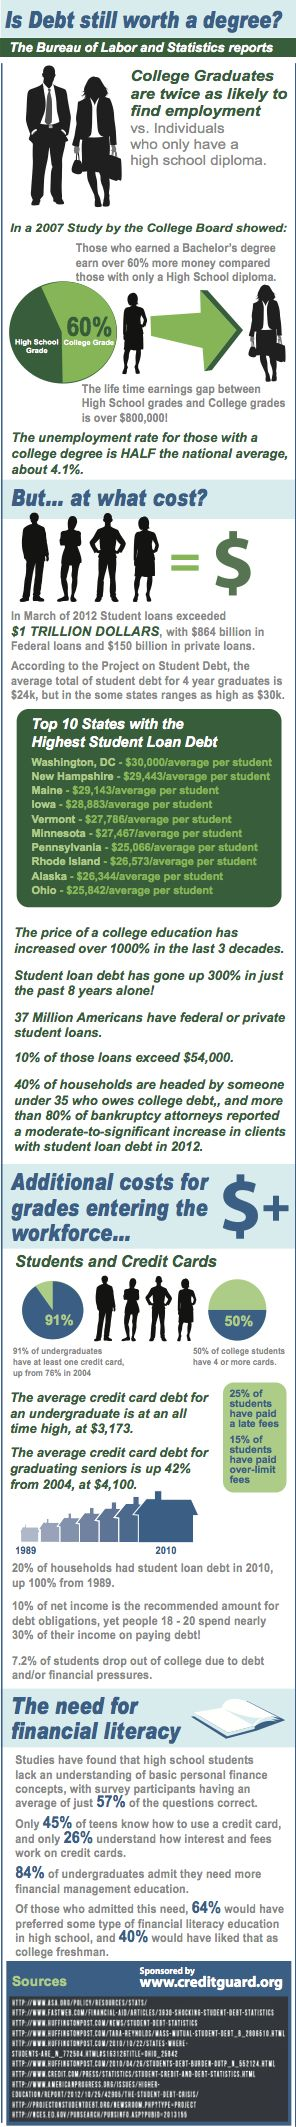 http://www.creditguard.org/student-loan-consolidation/student-debt-statistics/  Is Student Debt Still Worth The Degree? [Infographic]